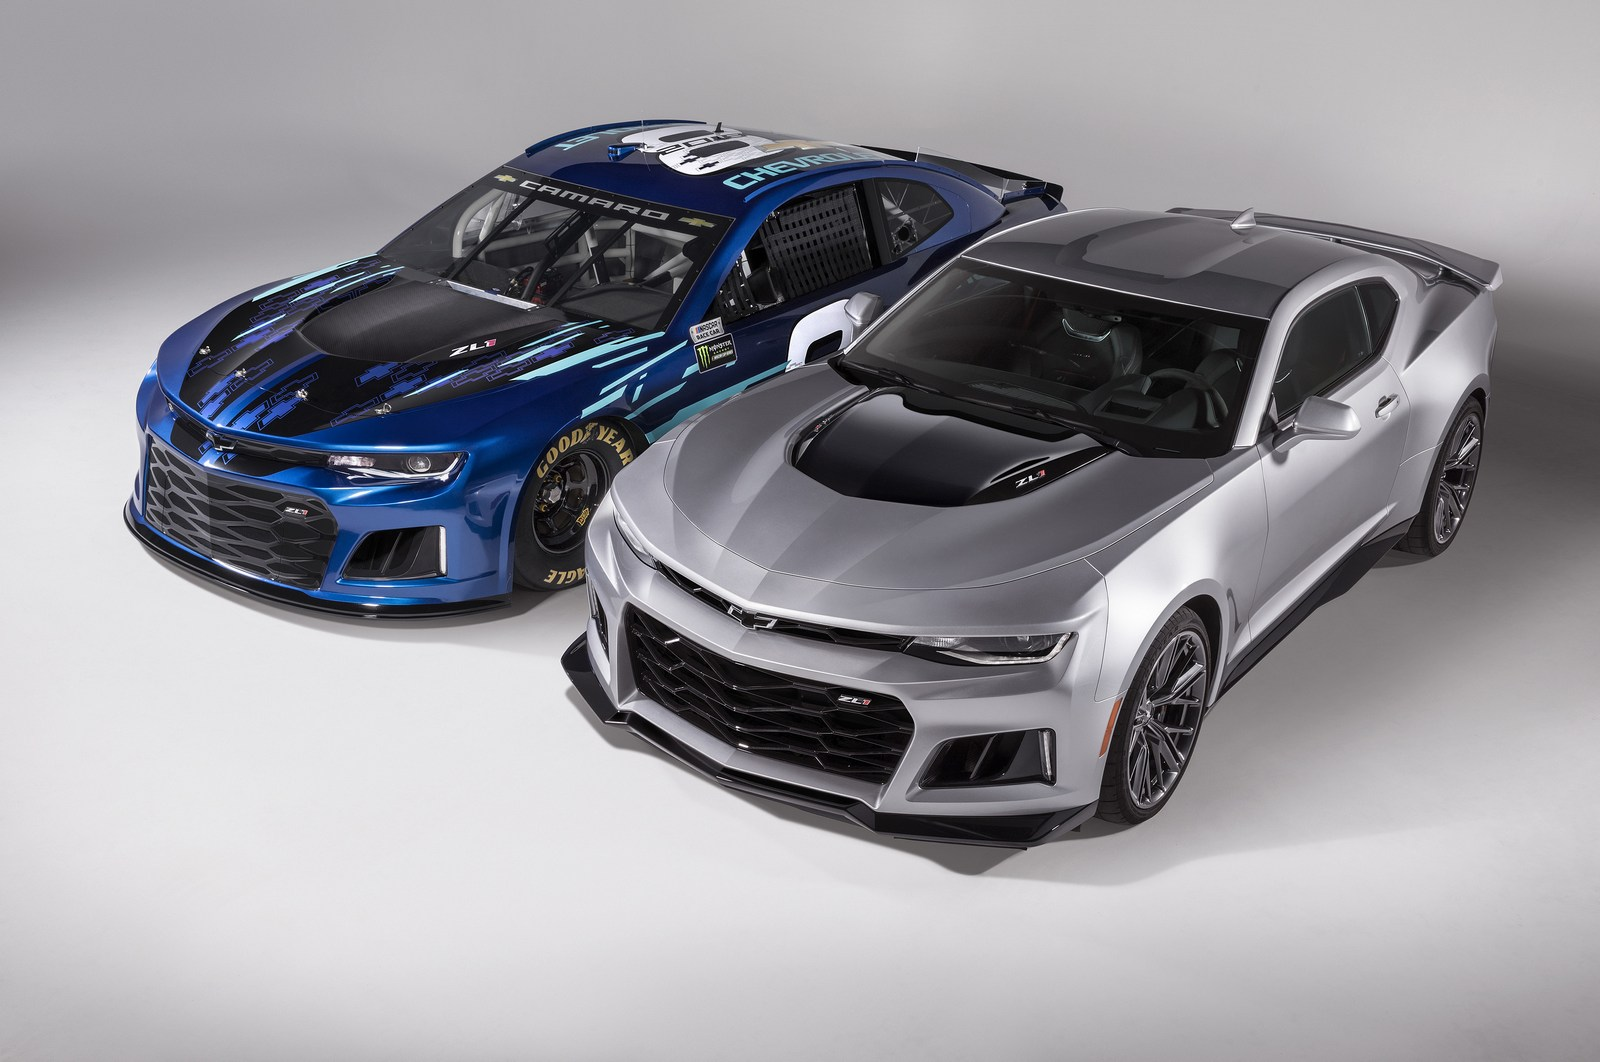 2018 Chevrolet Camaro Zl1 Race Car Unveiled For The Monster Energy Nascar Cup Series